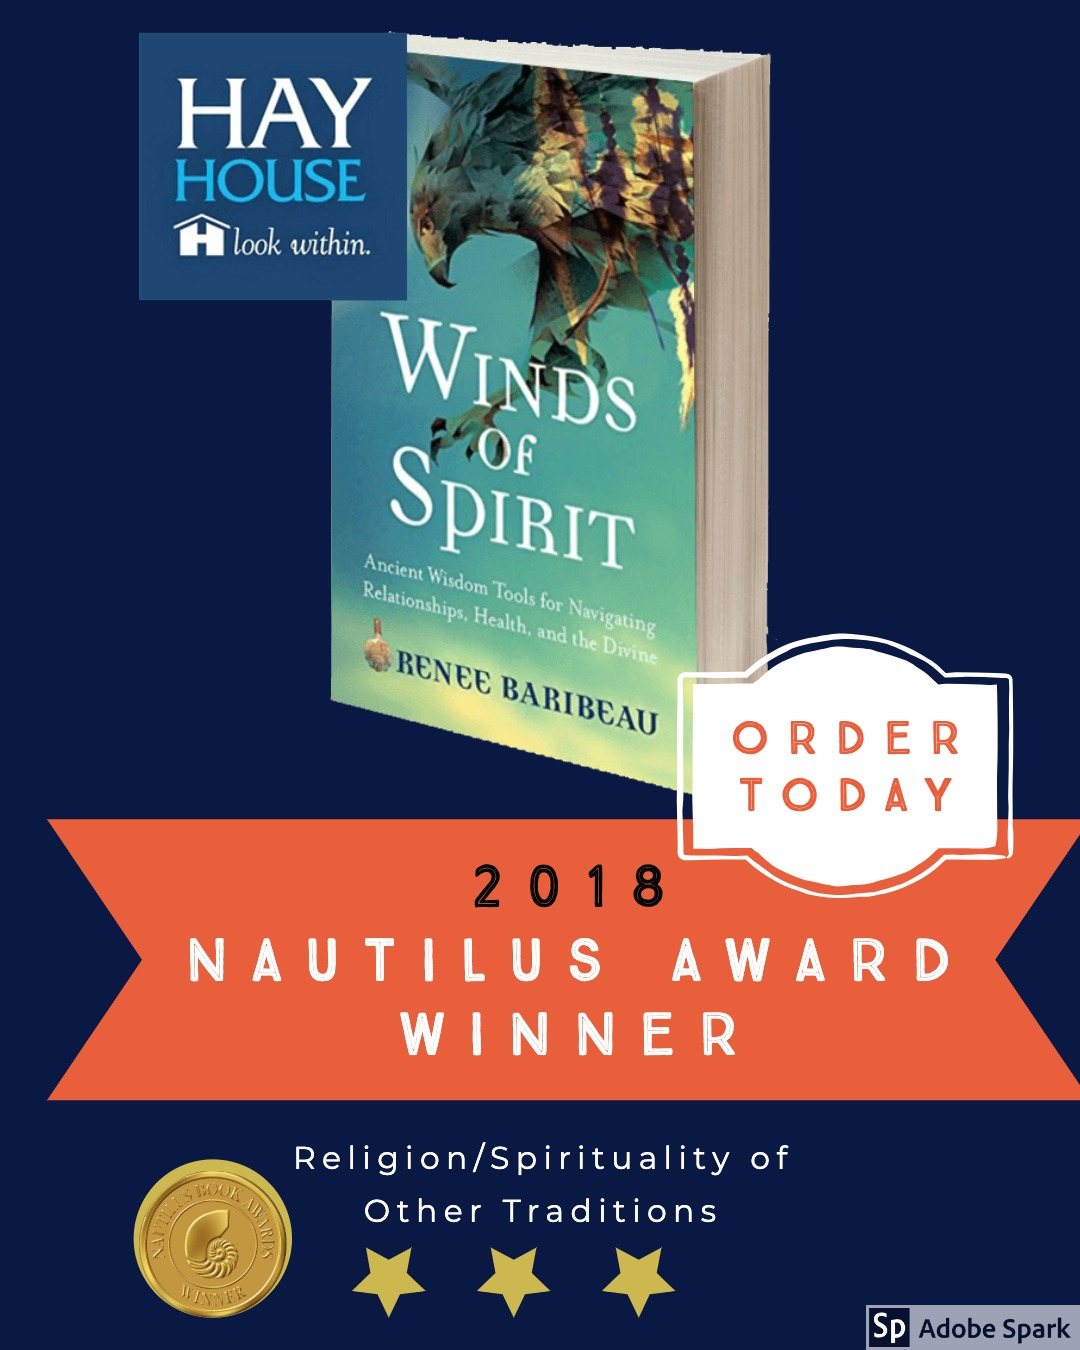 Winds of Spirit joins the ranks of books by Byron Katie, Brene Brown, Anne Lamott and Thich Nhat Hanh as a Nautilus Award Winner. This trailblazing Hay House book has won the Gold Award in the category of Religion /Spirituality of Other Traditions. Support Better Books for a Better World, order your copy today. https://www.amazon.com/dp/1401952755